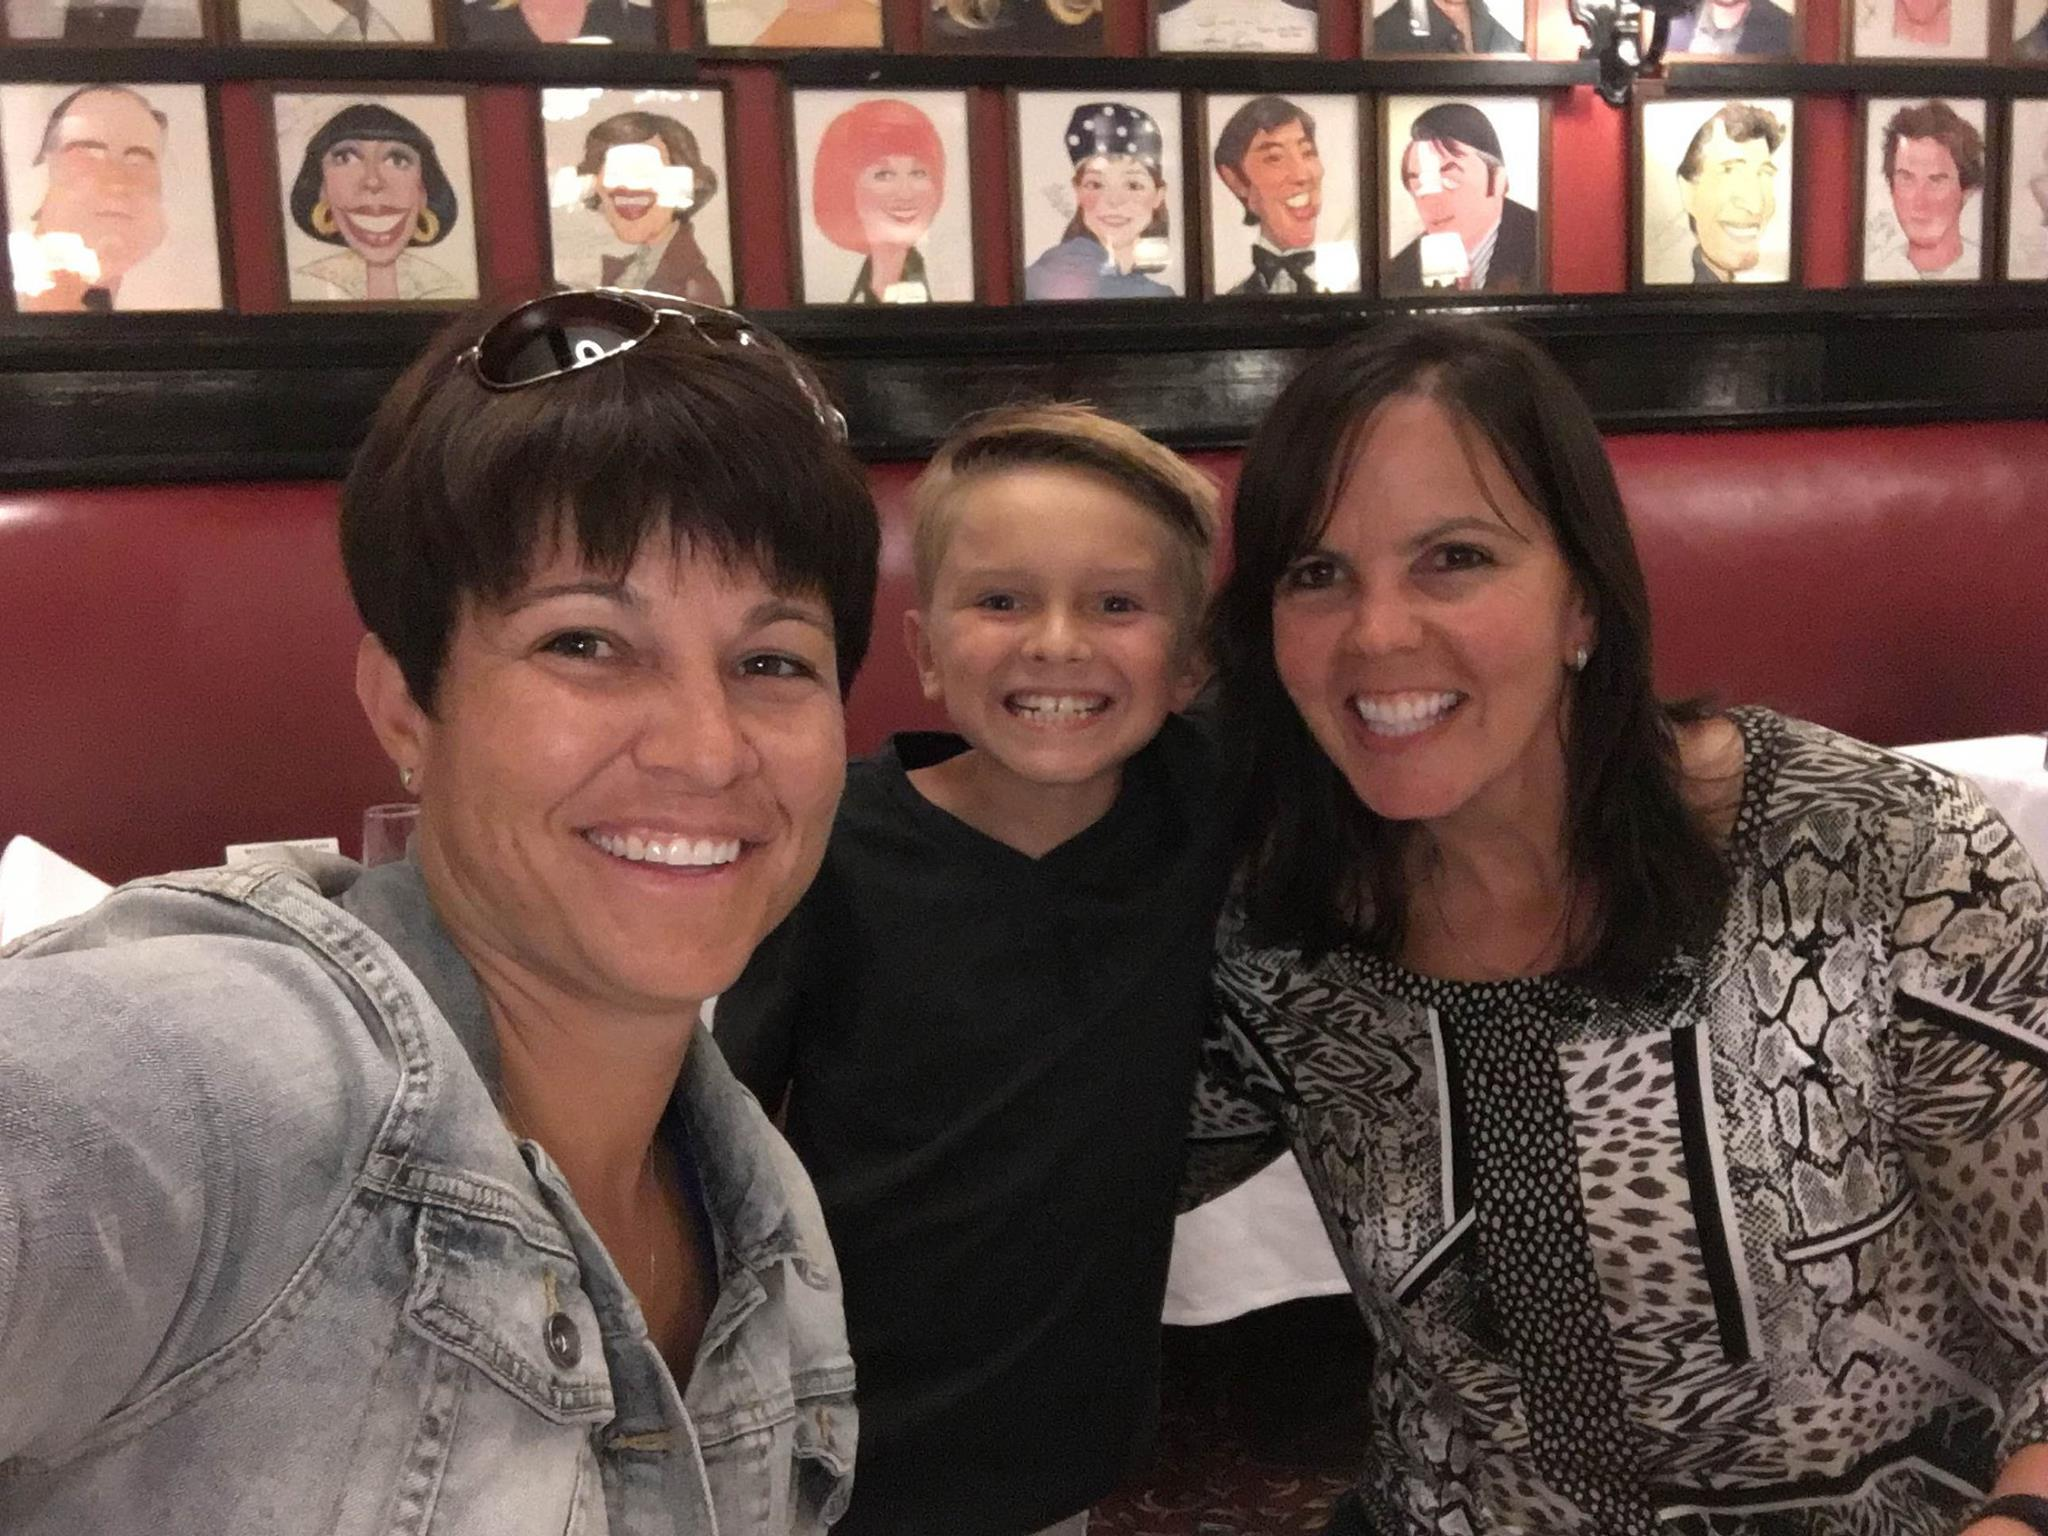 The Woods family at Sardi's Restaurant in New York